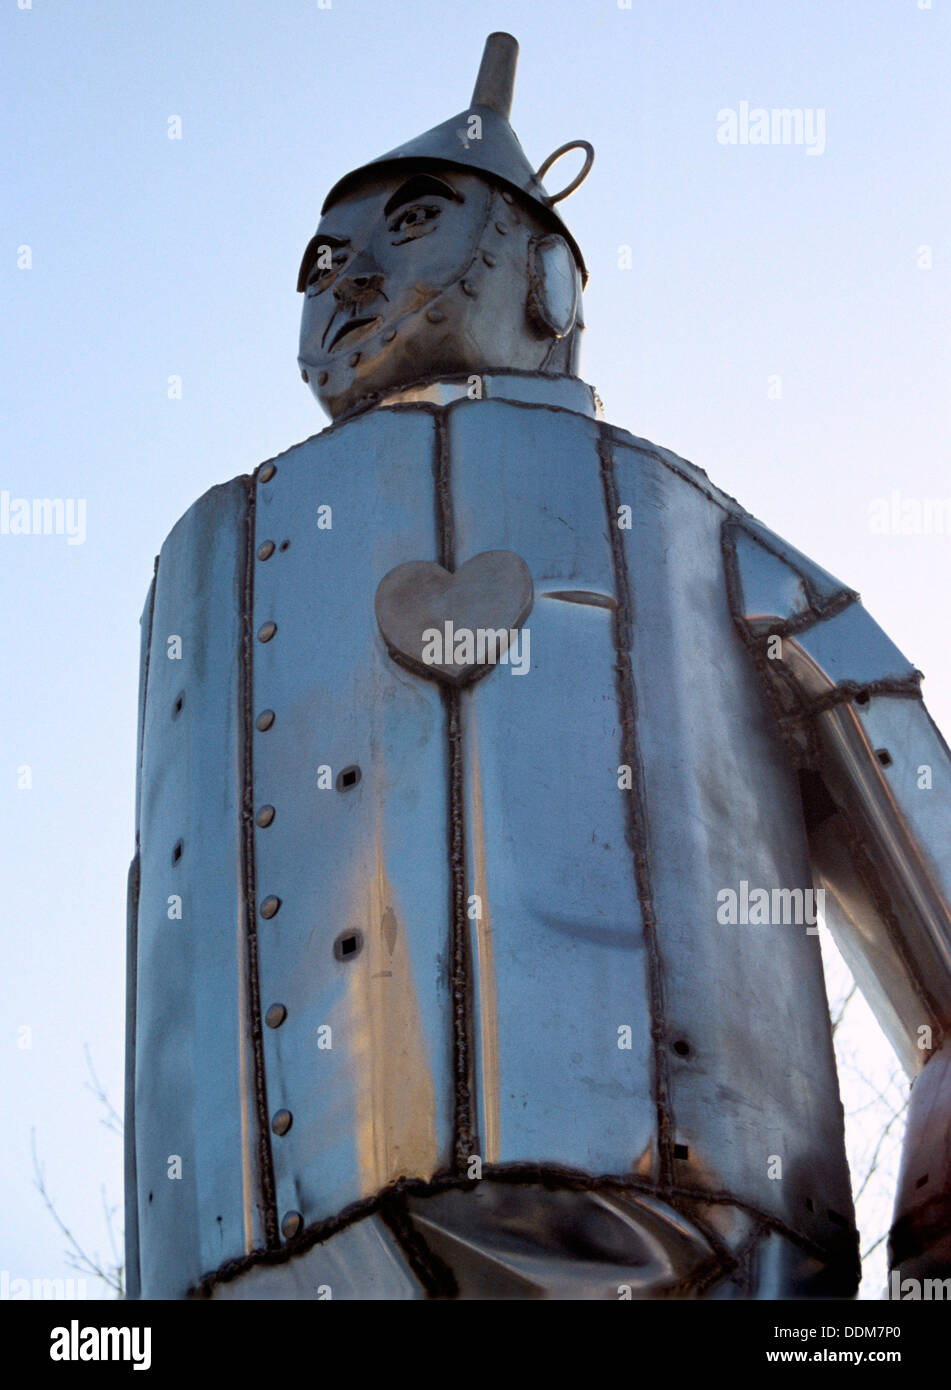 Tin Man, Chicago, Illinois, USA. Artist: SR Edmondson - Stock Image